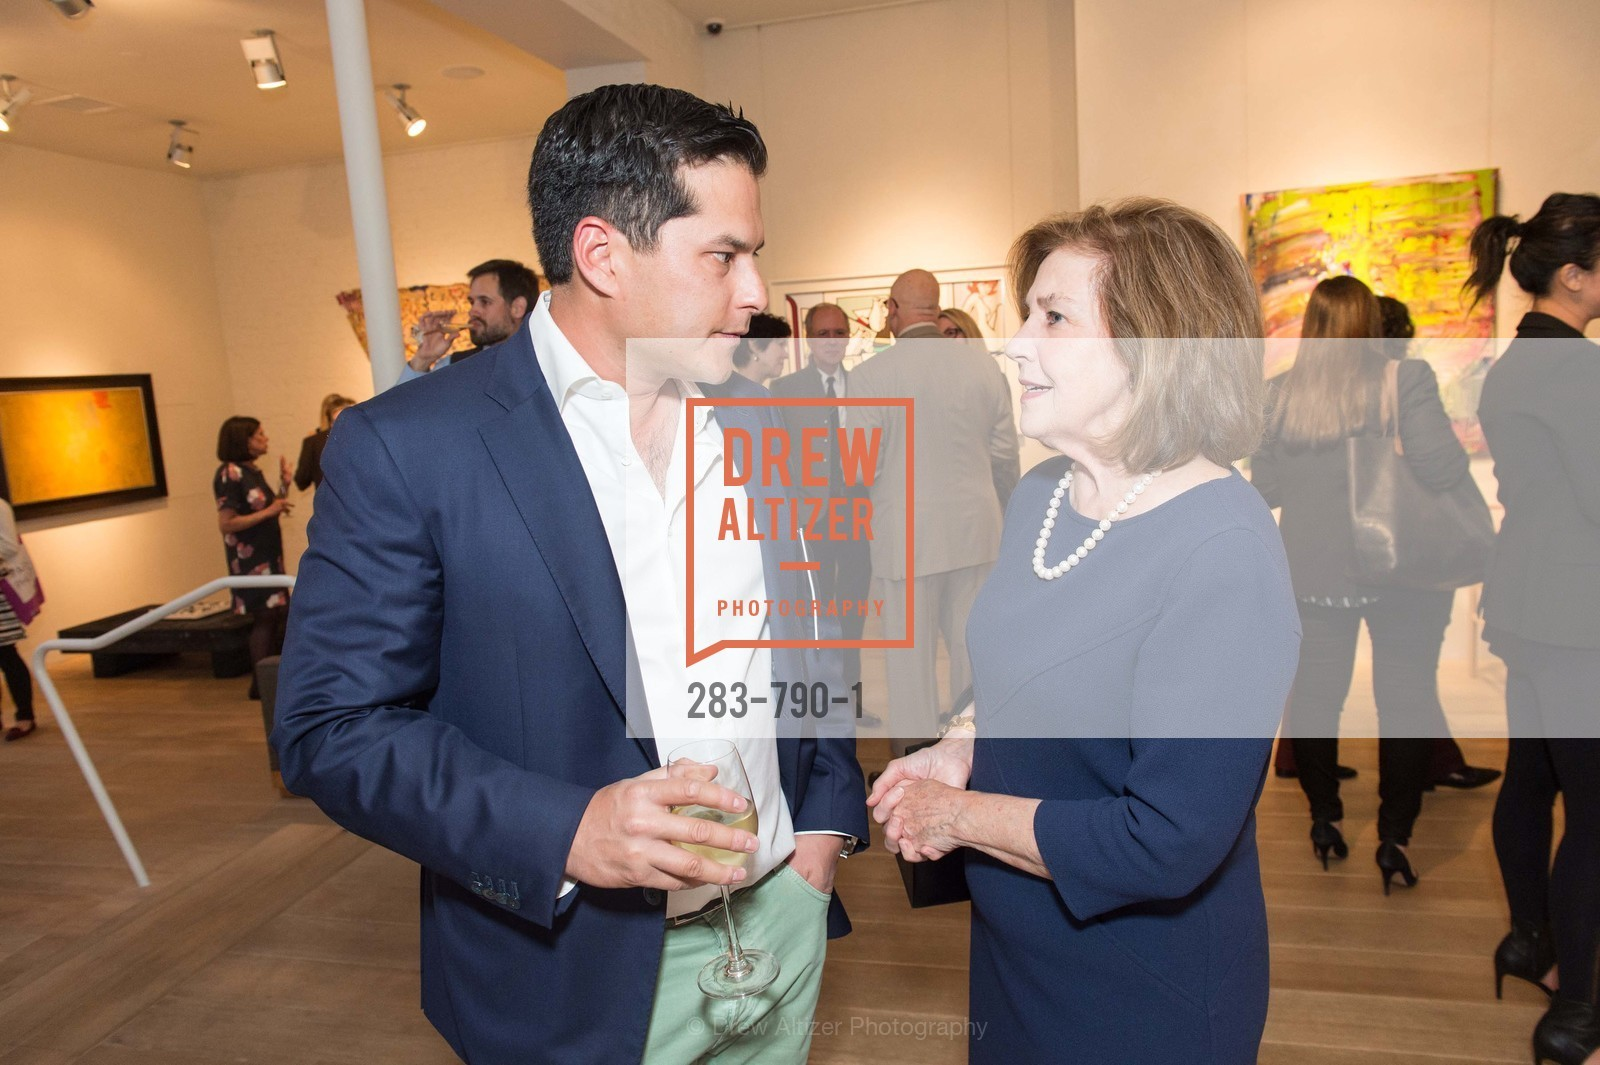 Andrew Hsu, Gretchen Berggruen, Post War and Contemporary Preview at HEDGE GALLERY, US, April 16th, 2015,Drew Altizer, Drew Altizer Photography, full-service agency, private events, San Francisco photographer, photographer california